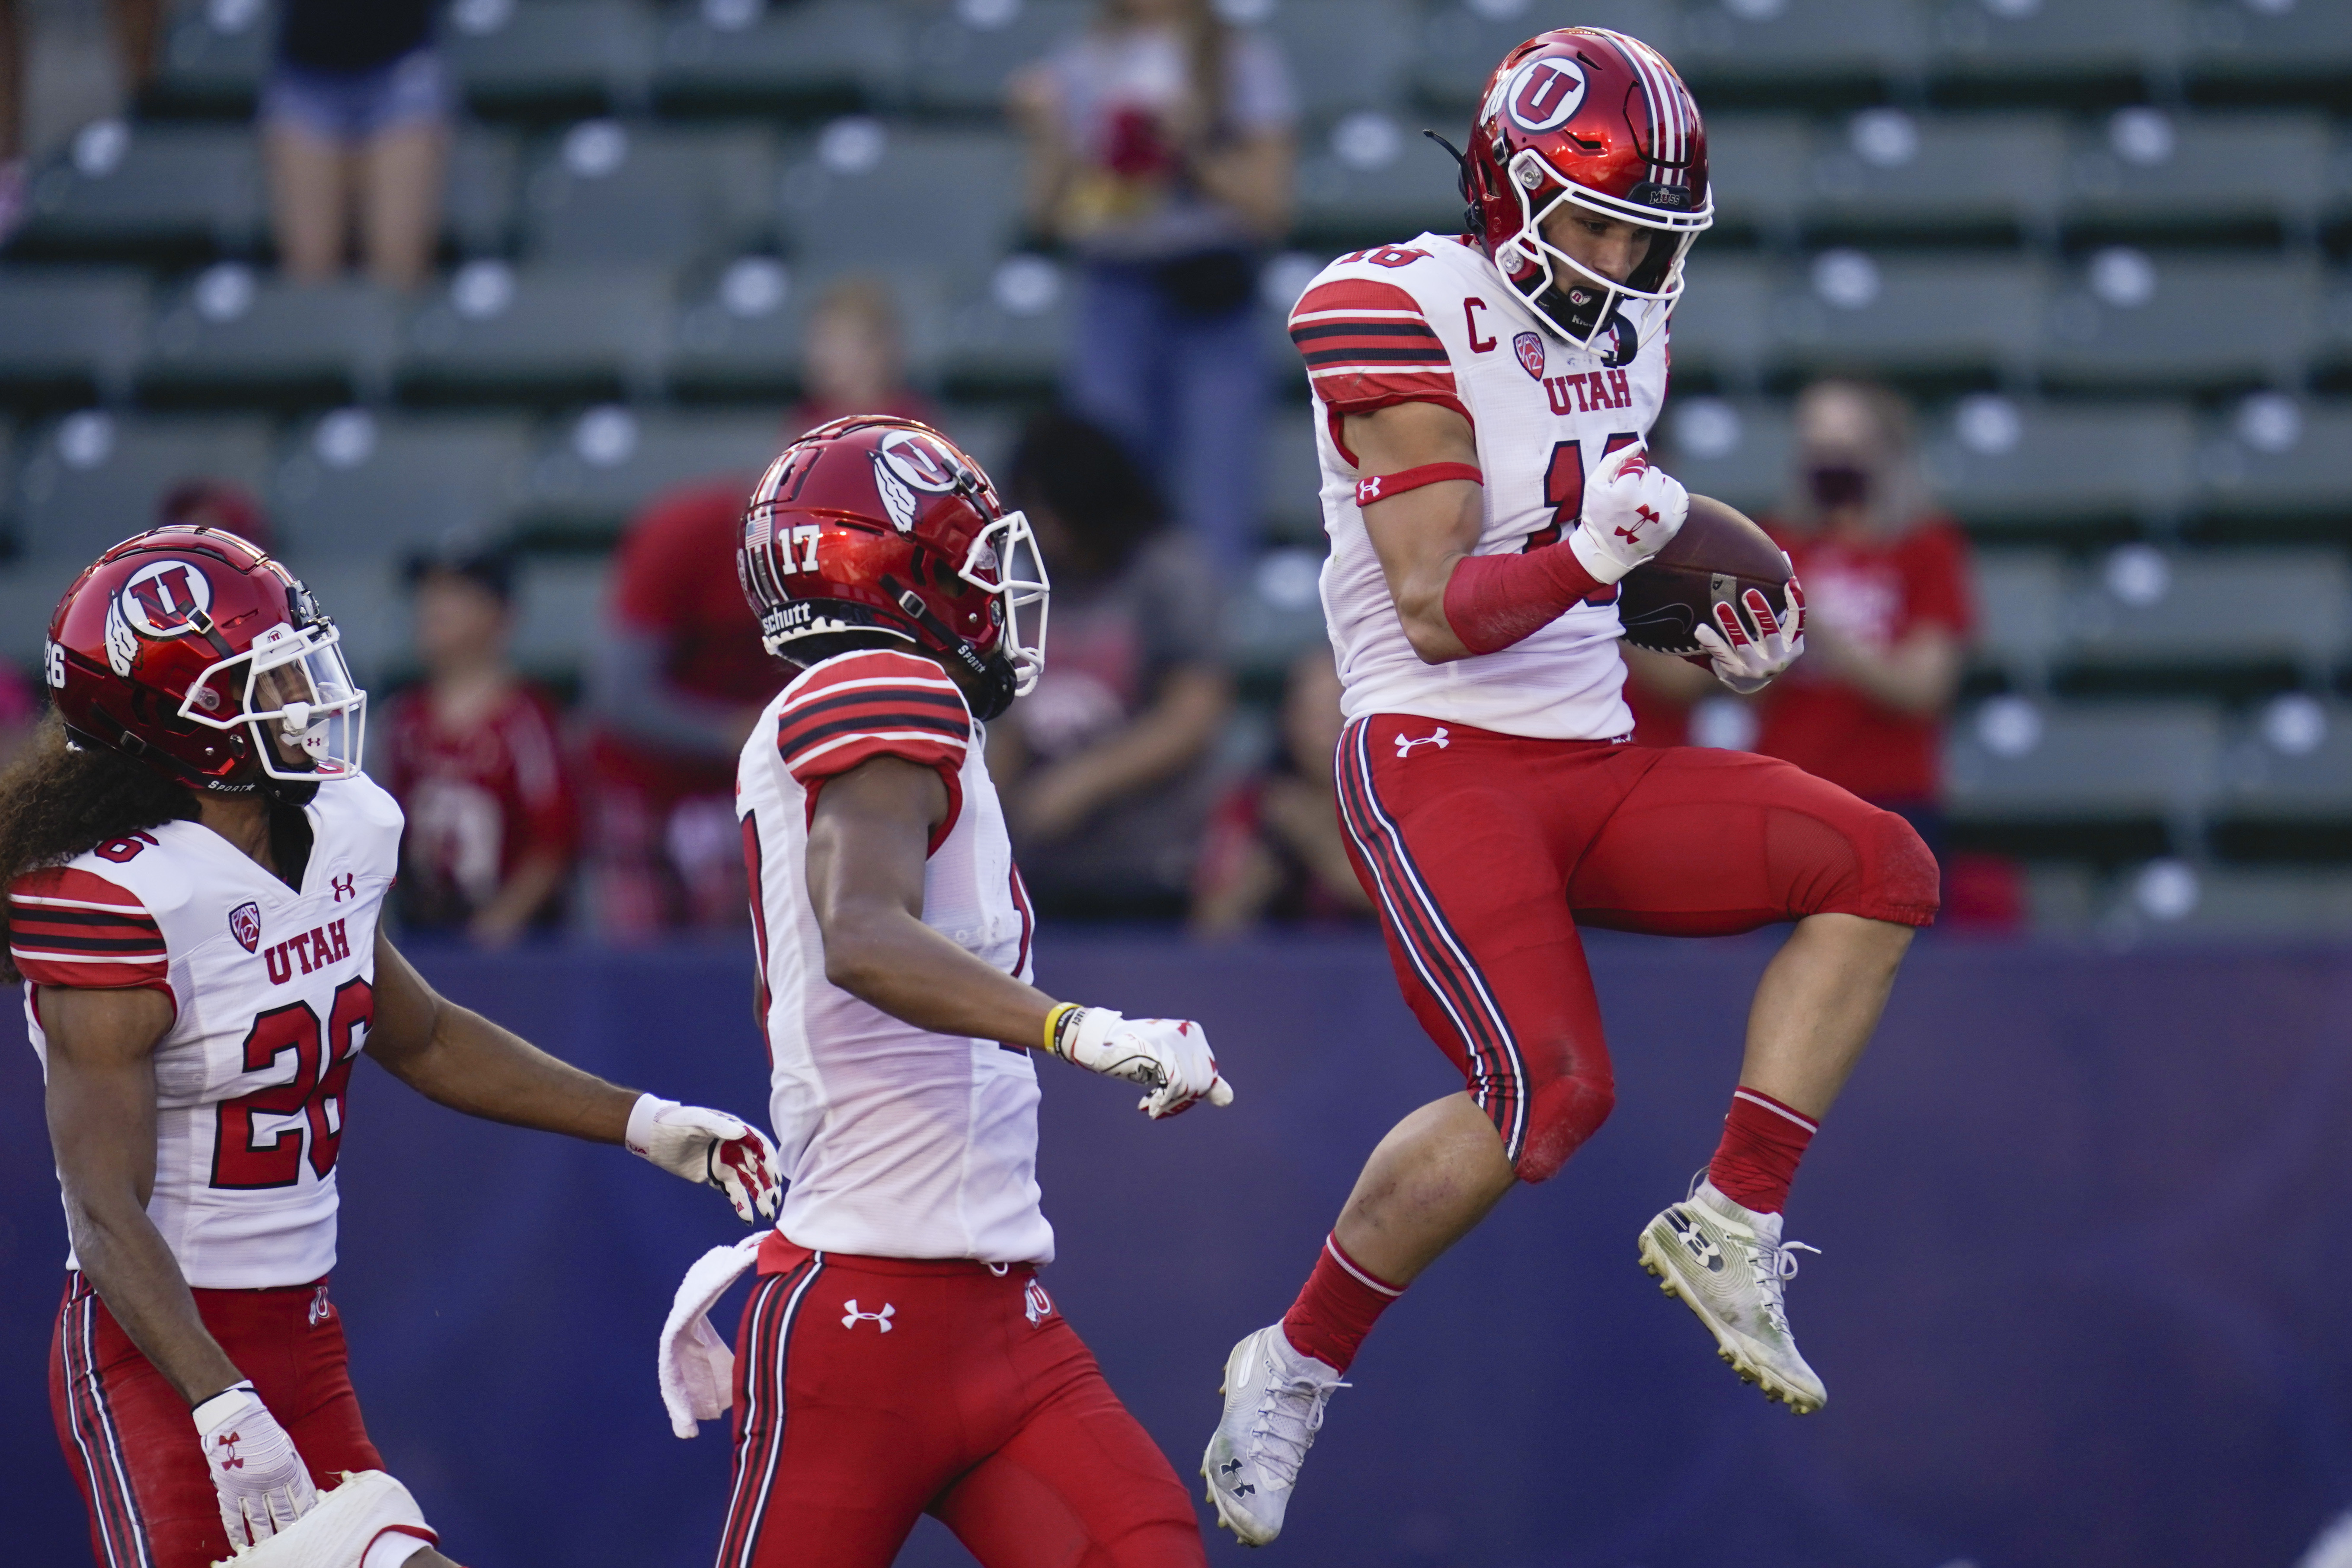 Utah's Britain Covey celebrates after returning a punt for a TD during game against San Diego State in Carson, Calif.